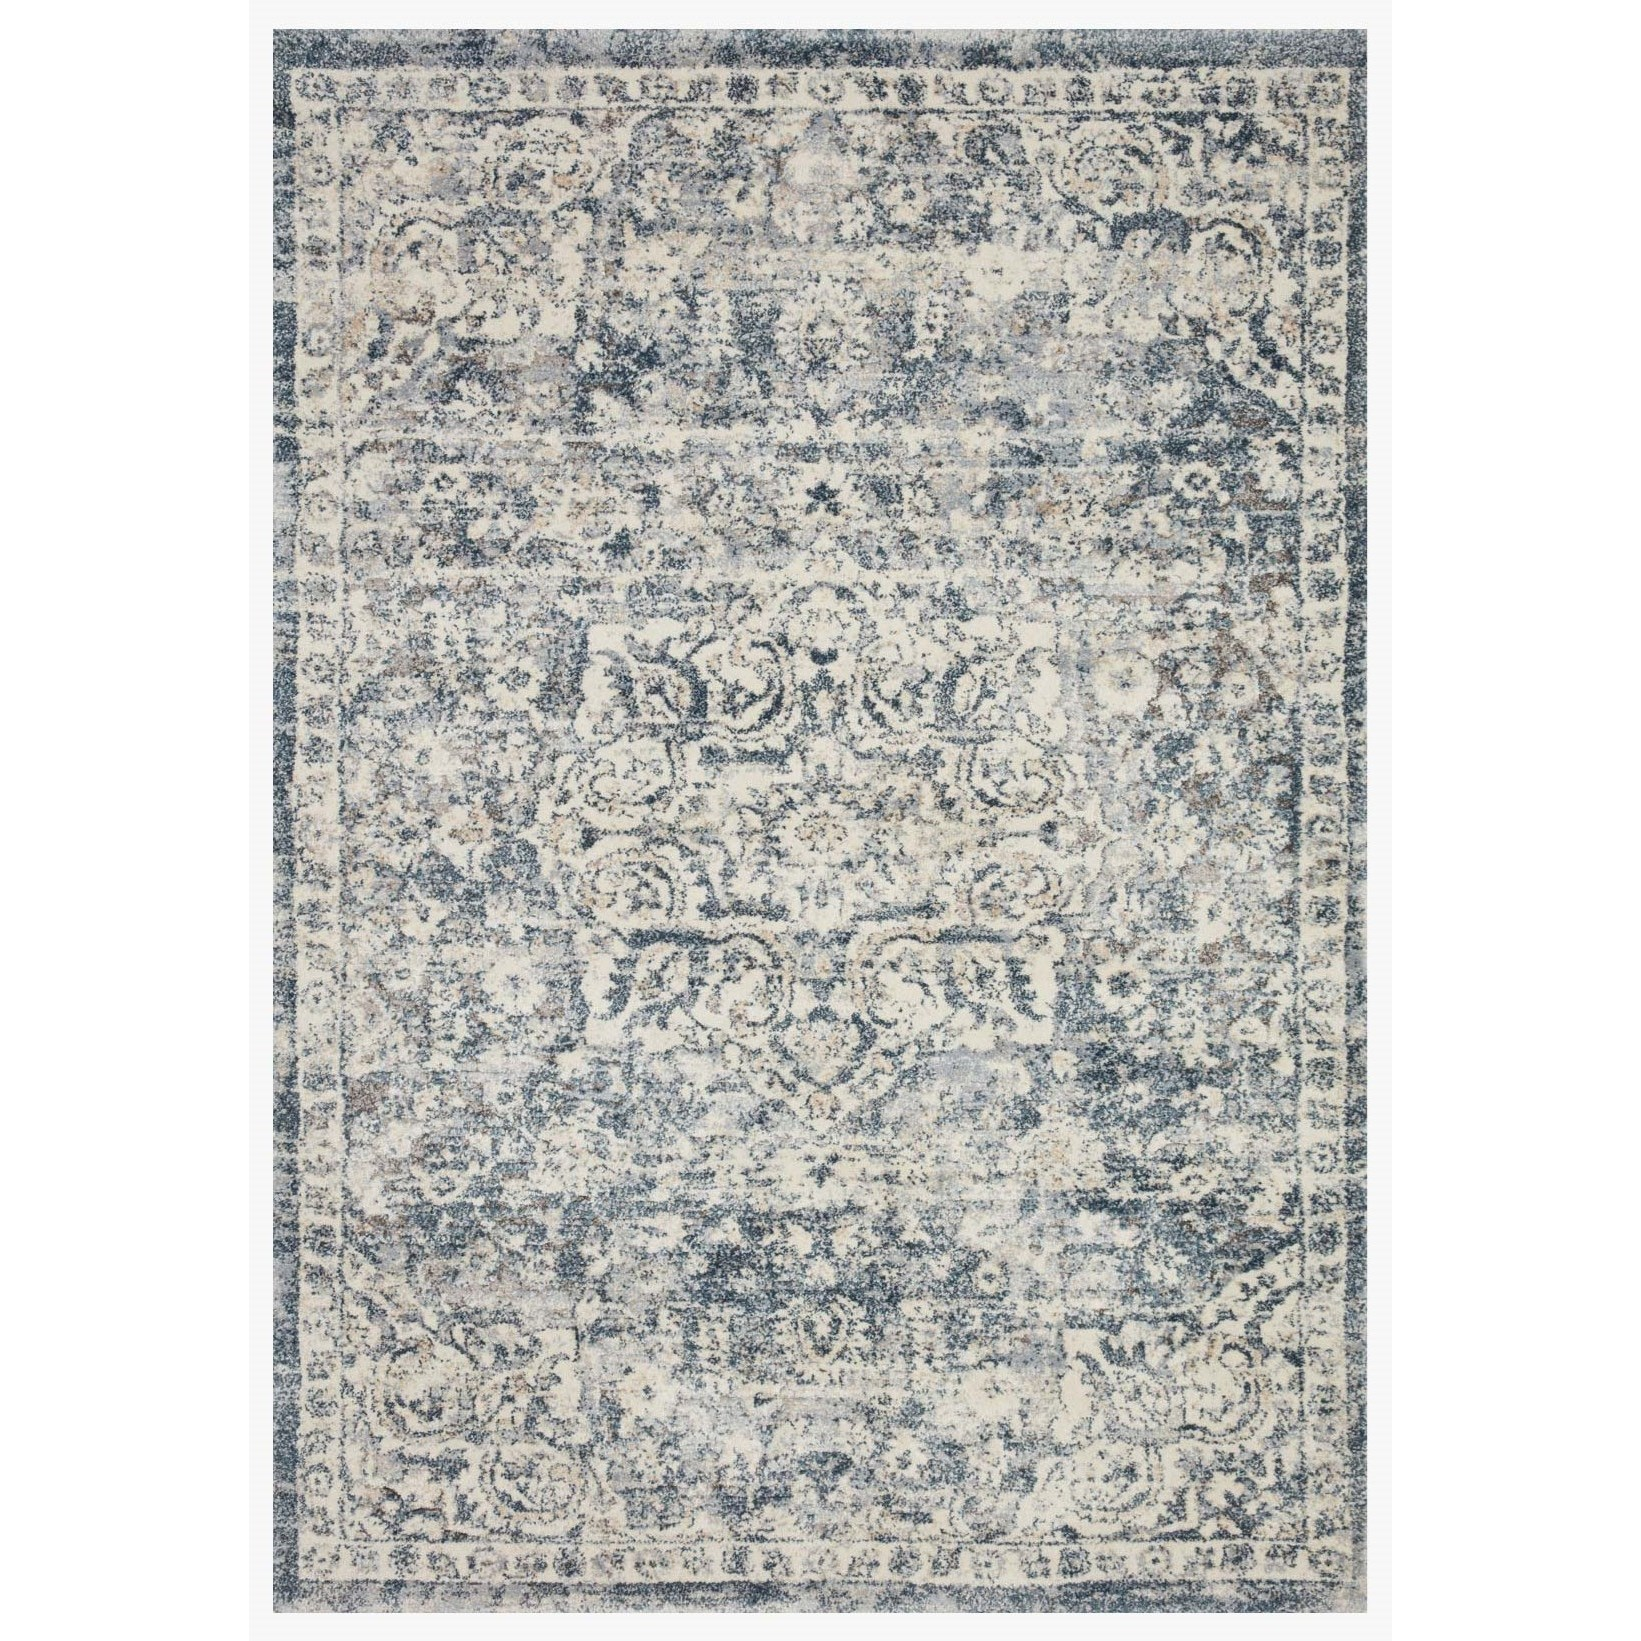 """Theory 3'7"""" x 5'7"""" Ivory / Blue Rug by Loloi Rugs at Virginia Furniture Market"""